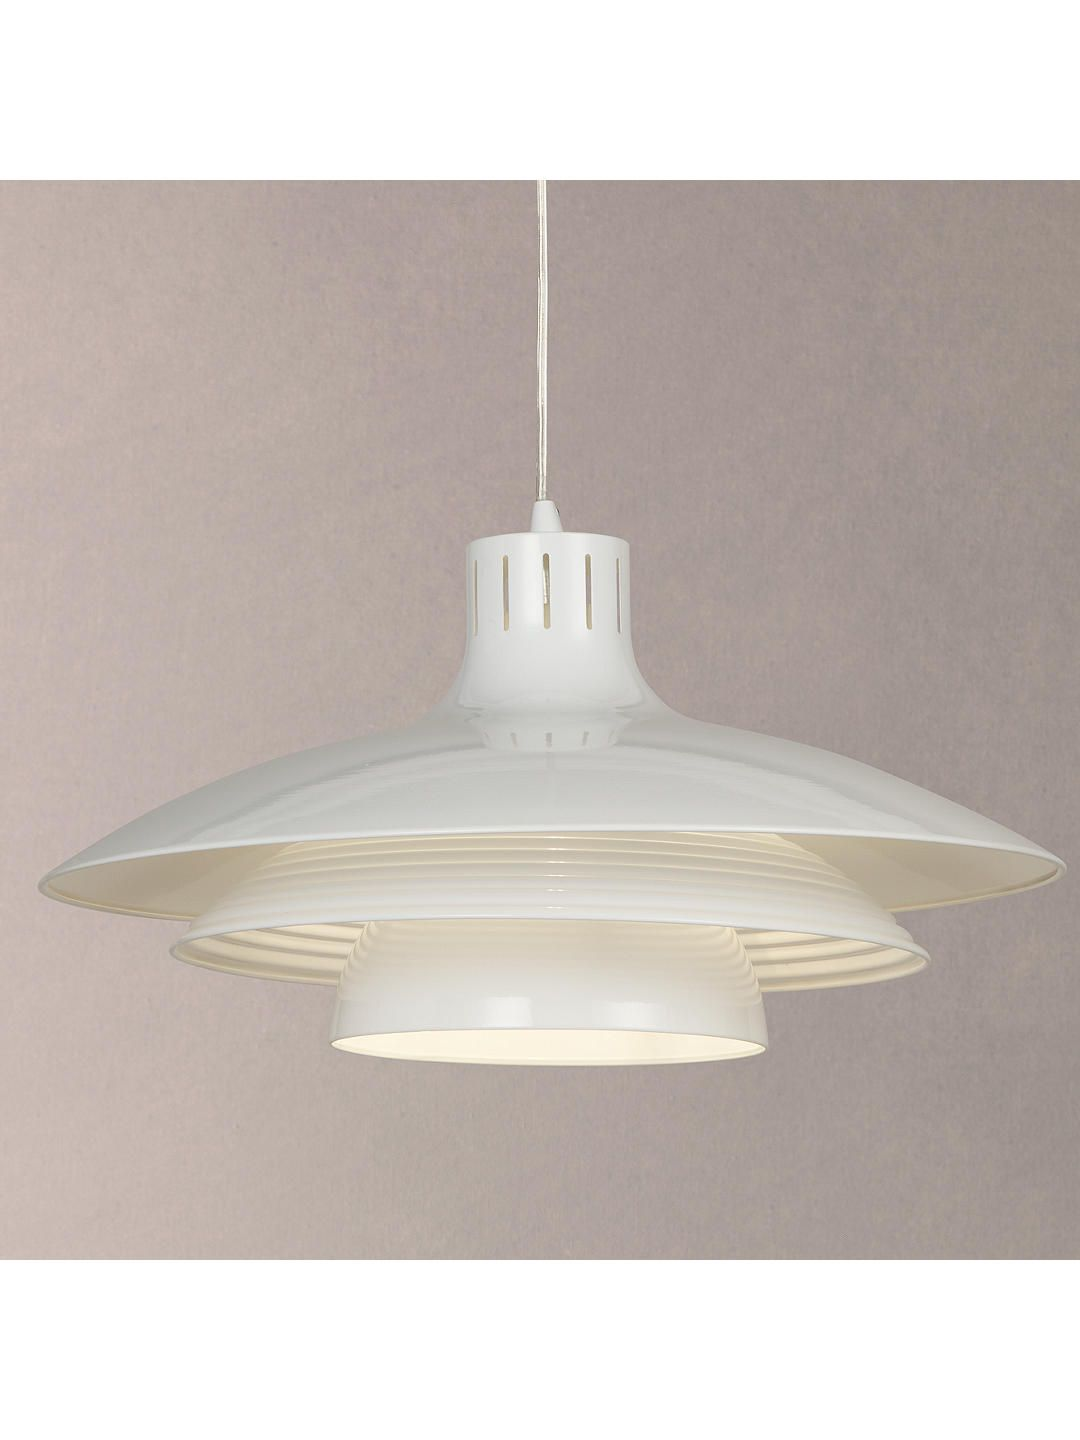 quality design dfa86 4ff8a House by John Lewis Stockholm Large Ceiling Light, White in ...